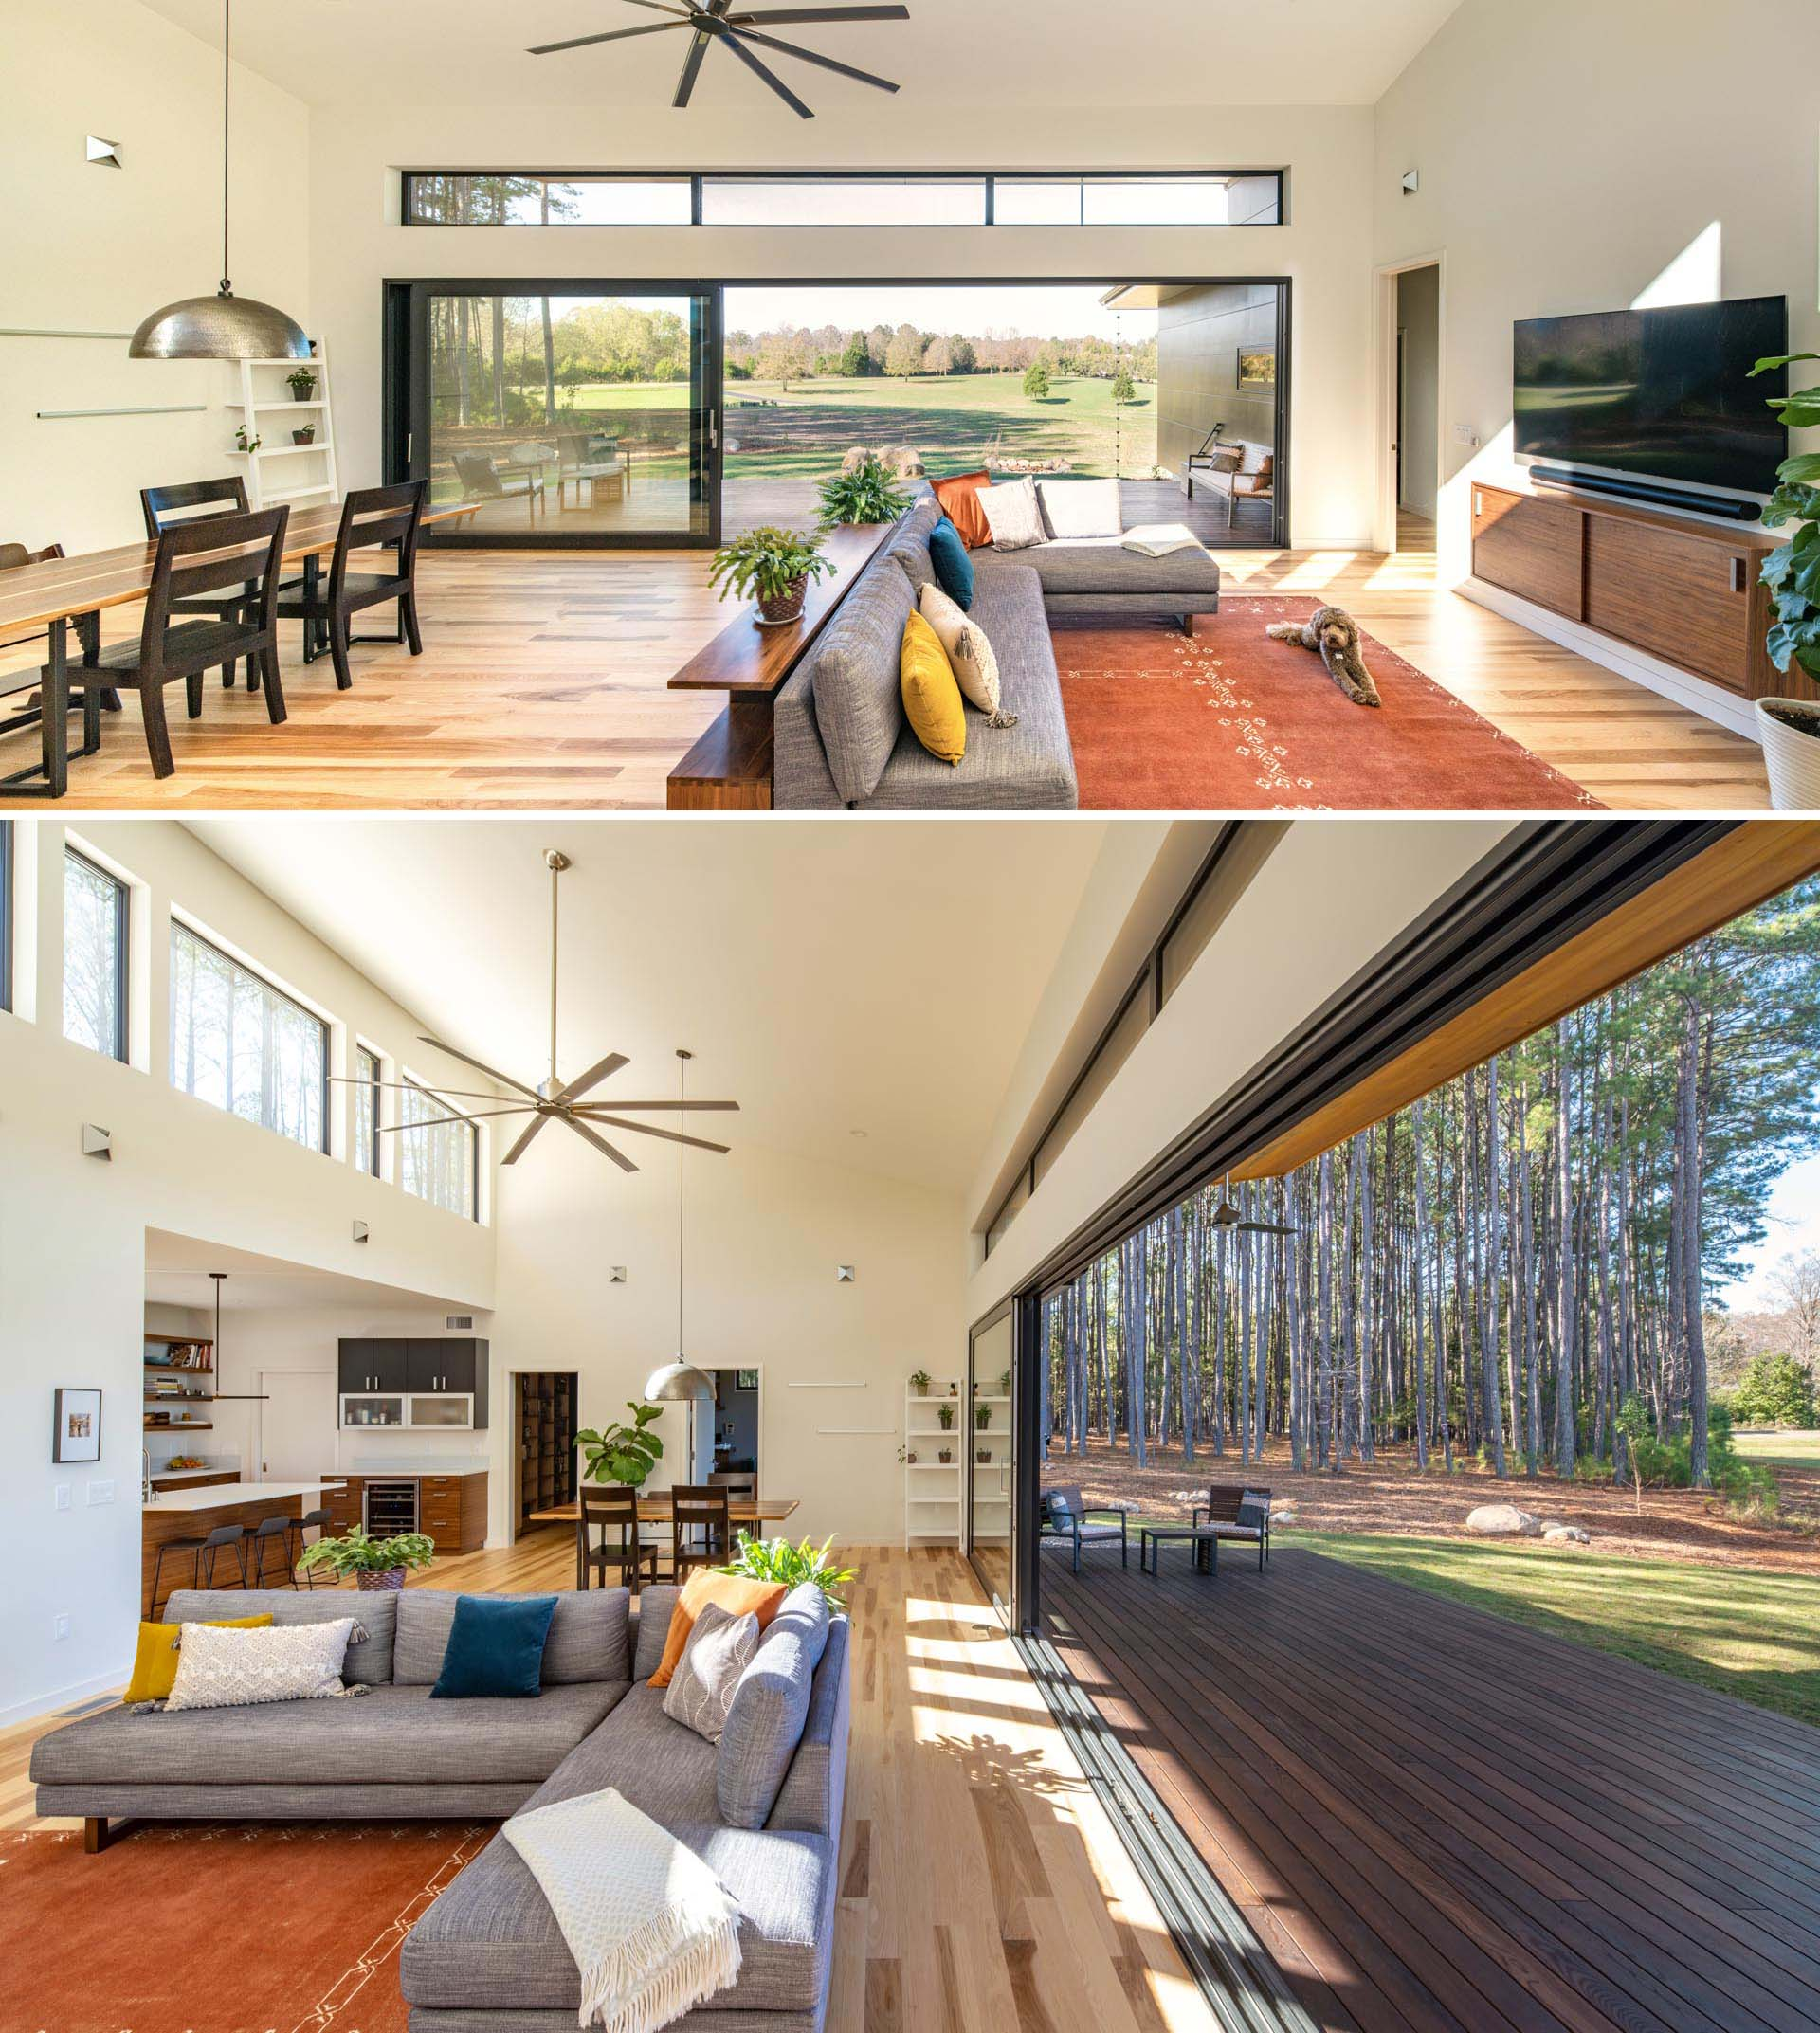 A modern home interior with high ceilings, clerestory windows, and an open plan living room and dining room.